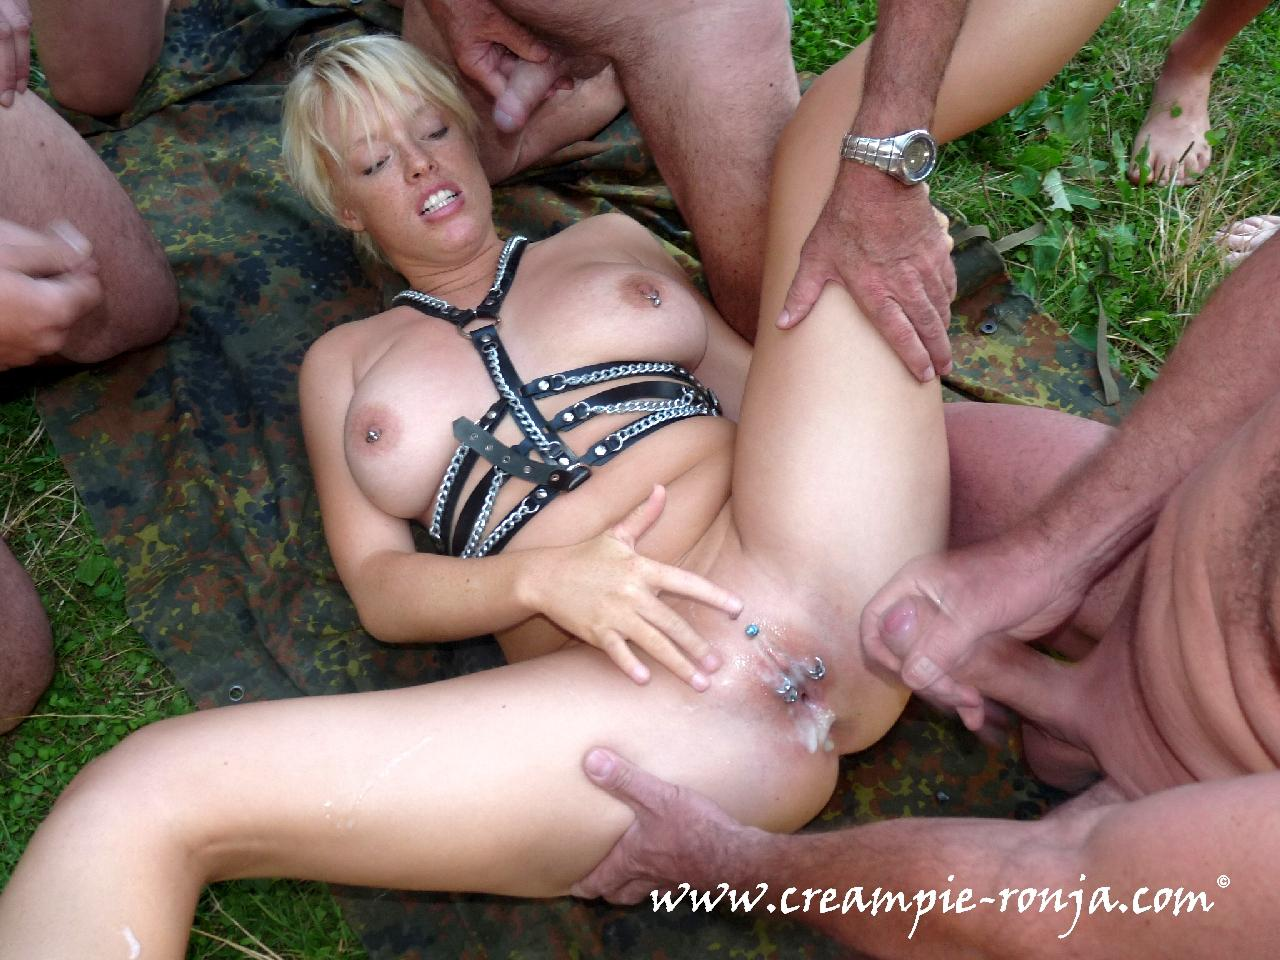 Anal creampie party